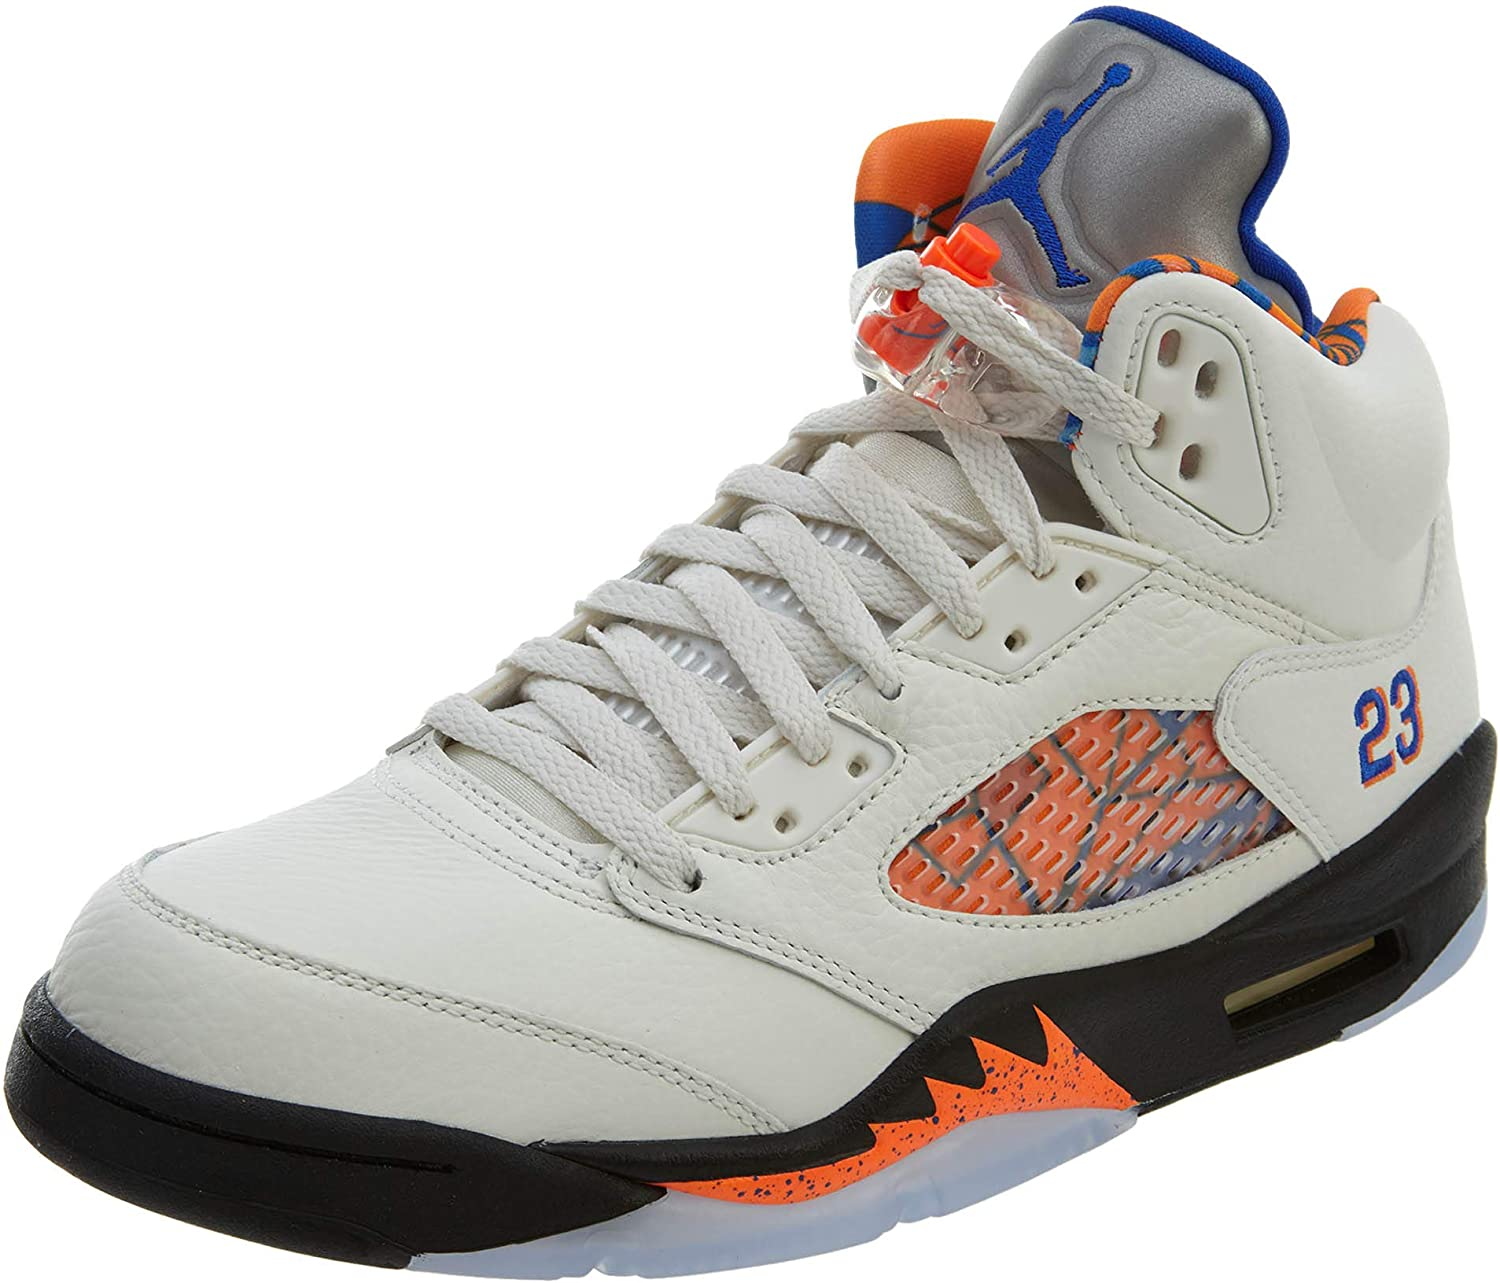 Nike Air Jordan 5 Retro - sail/hyper royal-orange peel, Größe:11 B07GNSTSZ3  | Deutsche Outlets